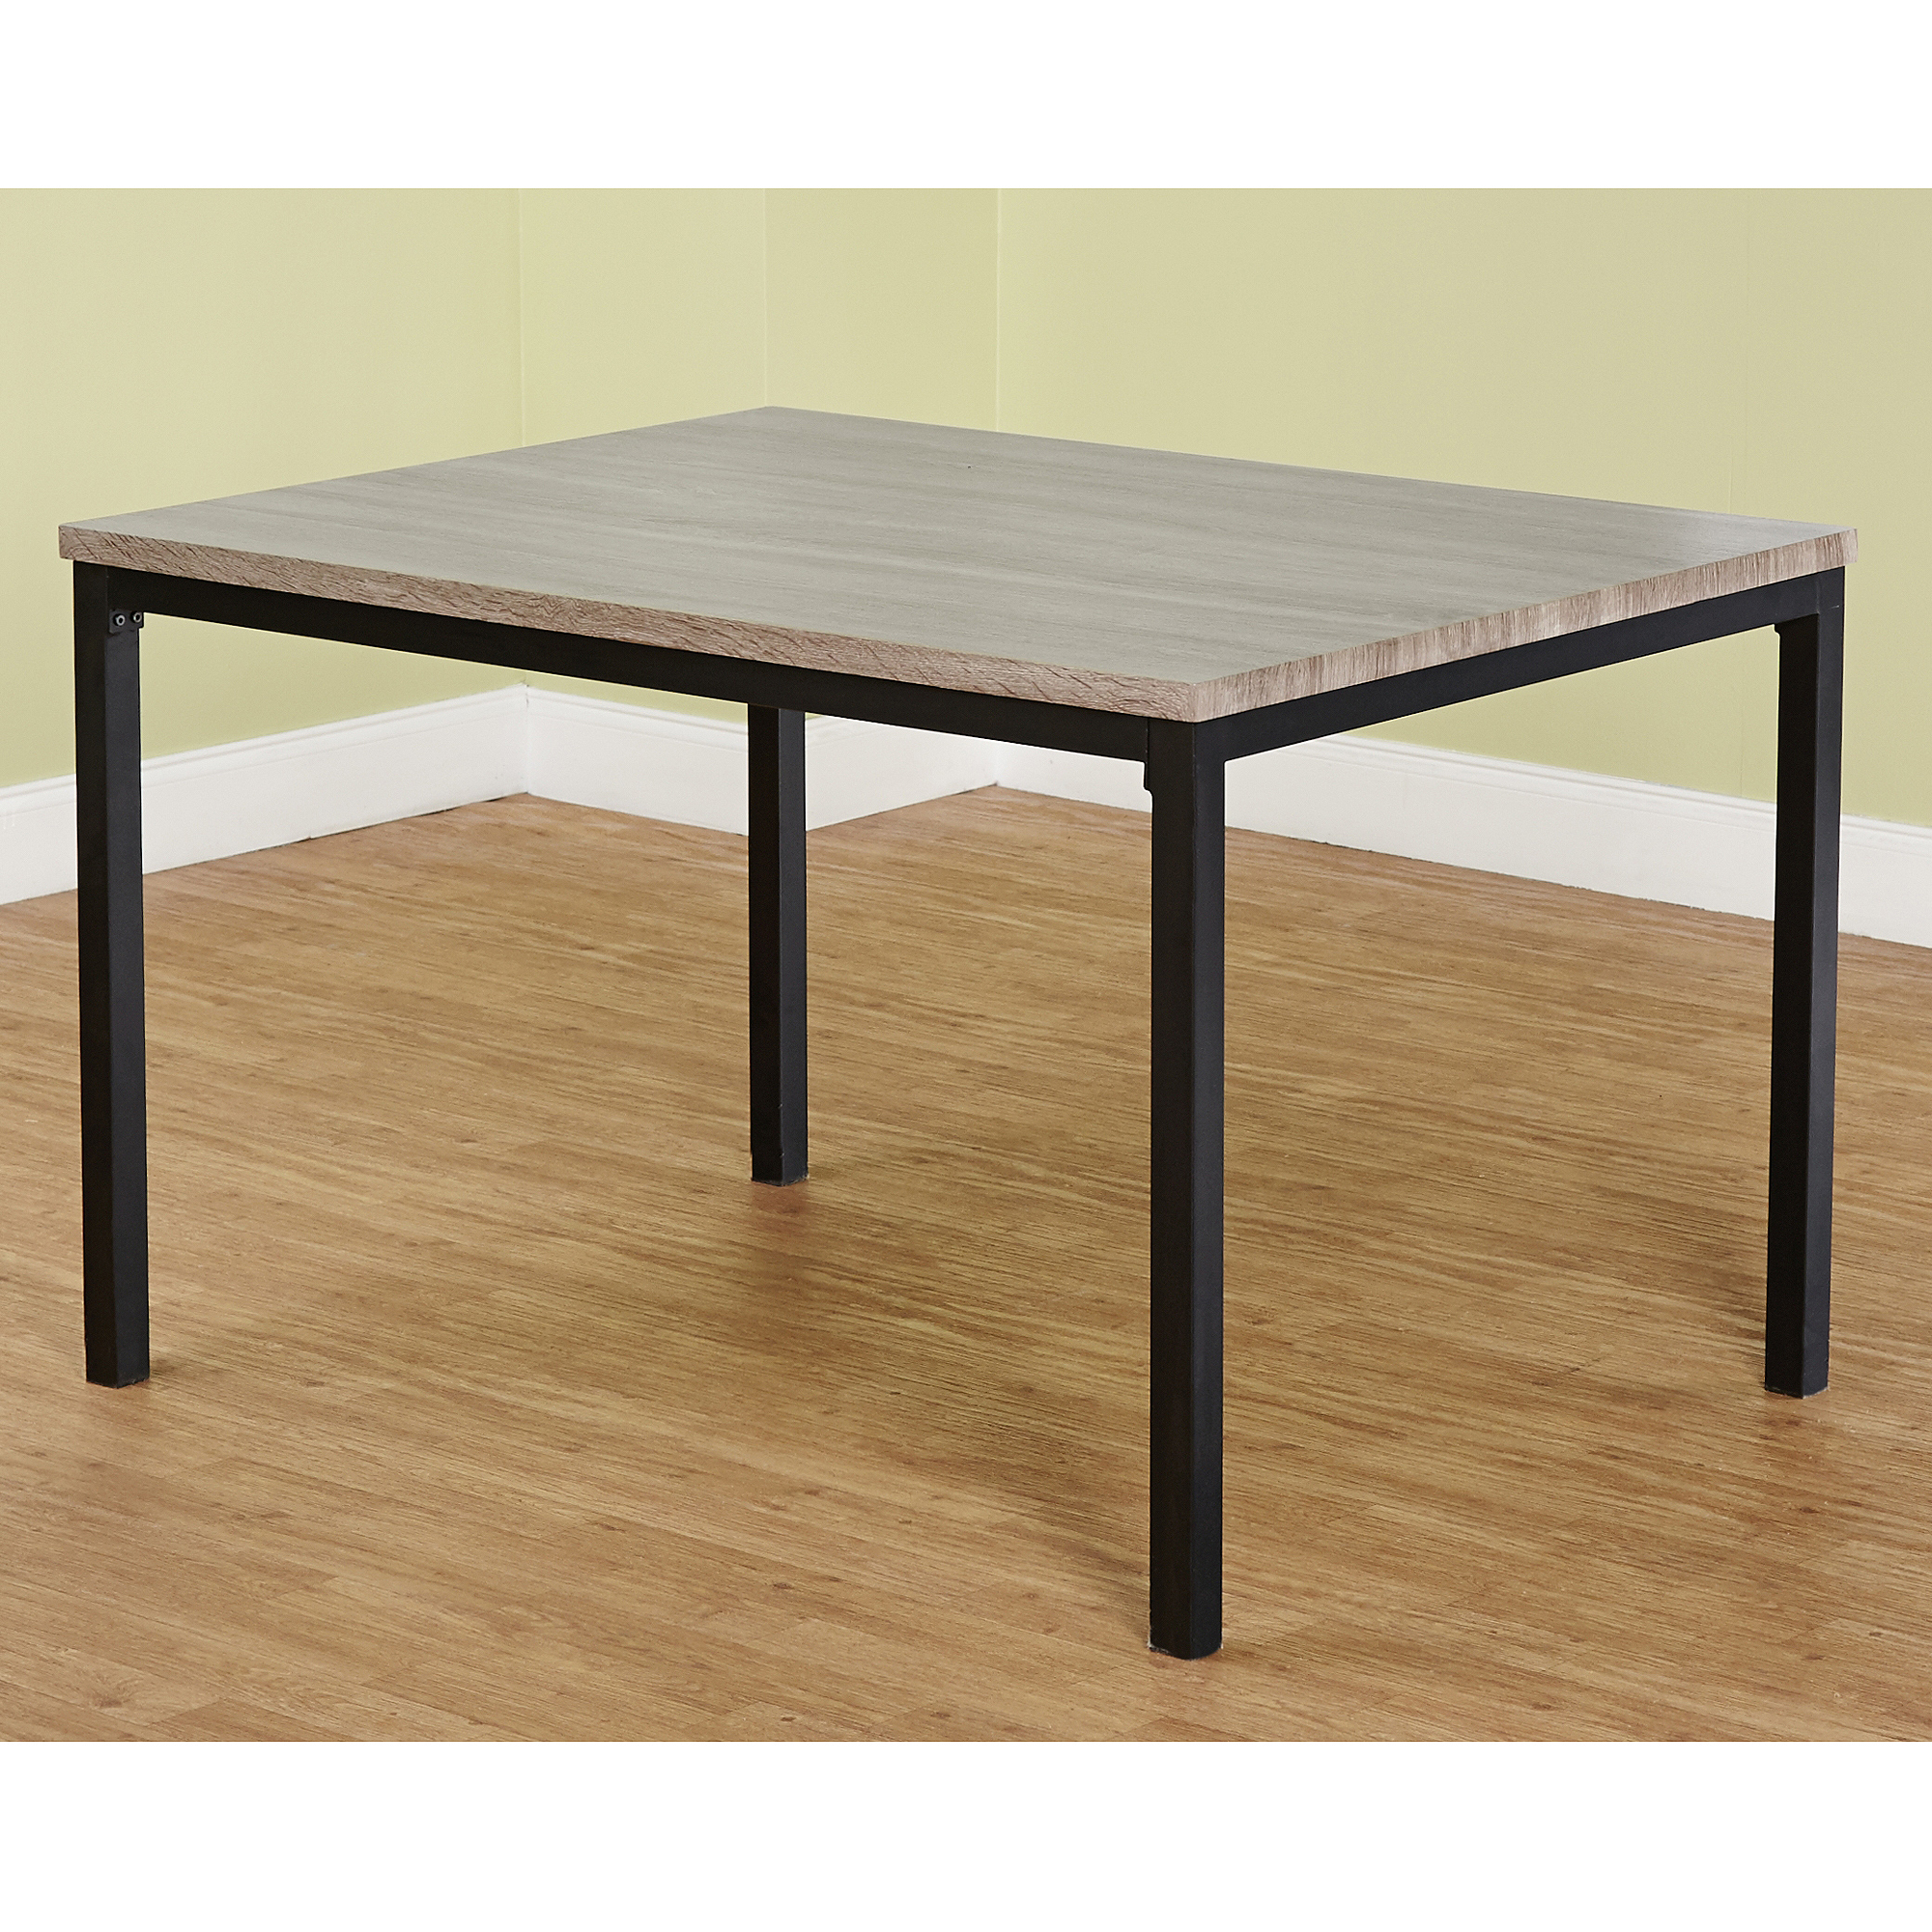 Black Bench For Dining Table: Contemporary Dining Table, Black